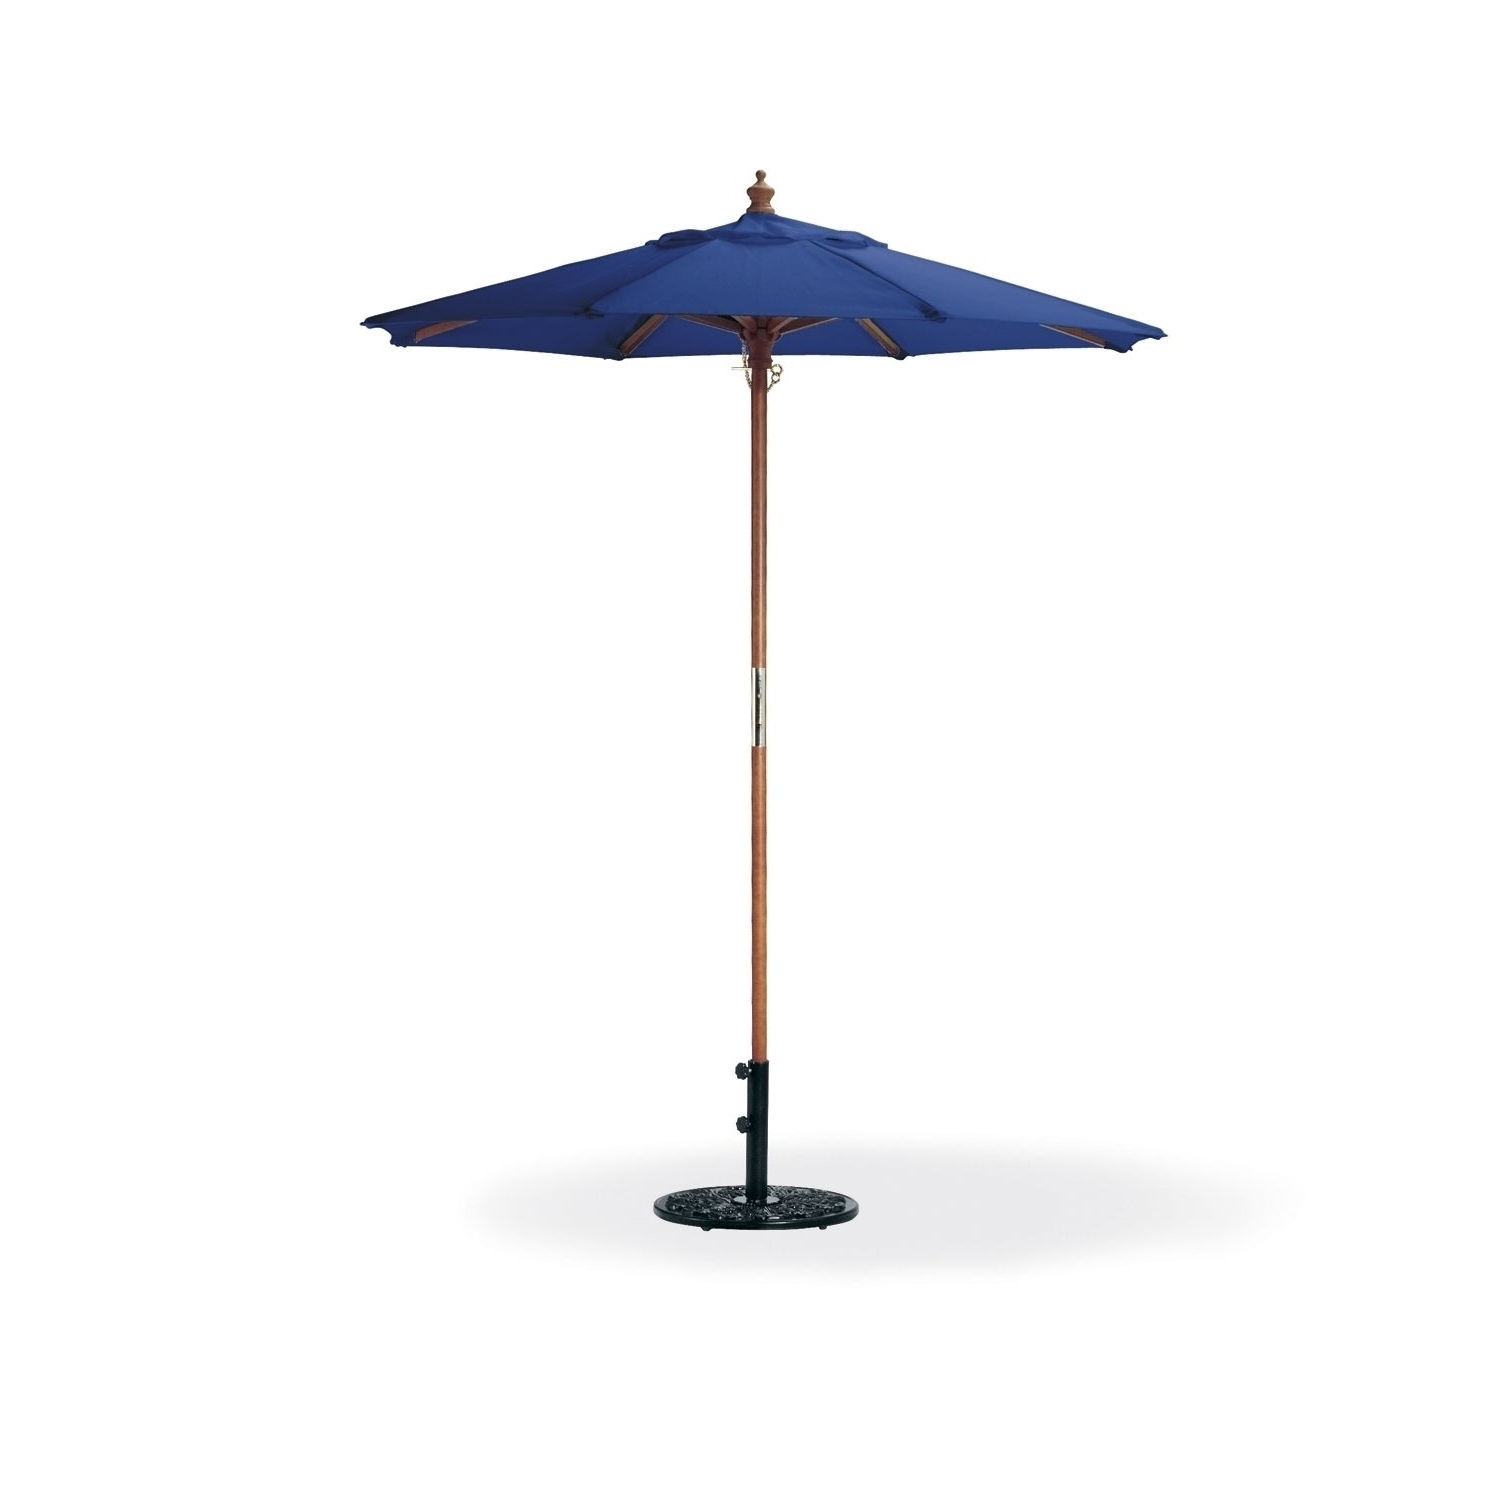 Oxford Garden Octagon 6 Foot Canvas Market Umbrella Pertaining To Most Up To Date Market Umbrellas (View 13 of 20)